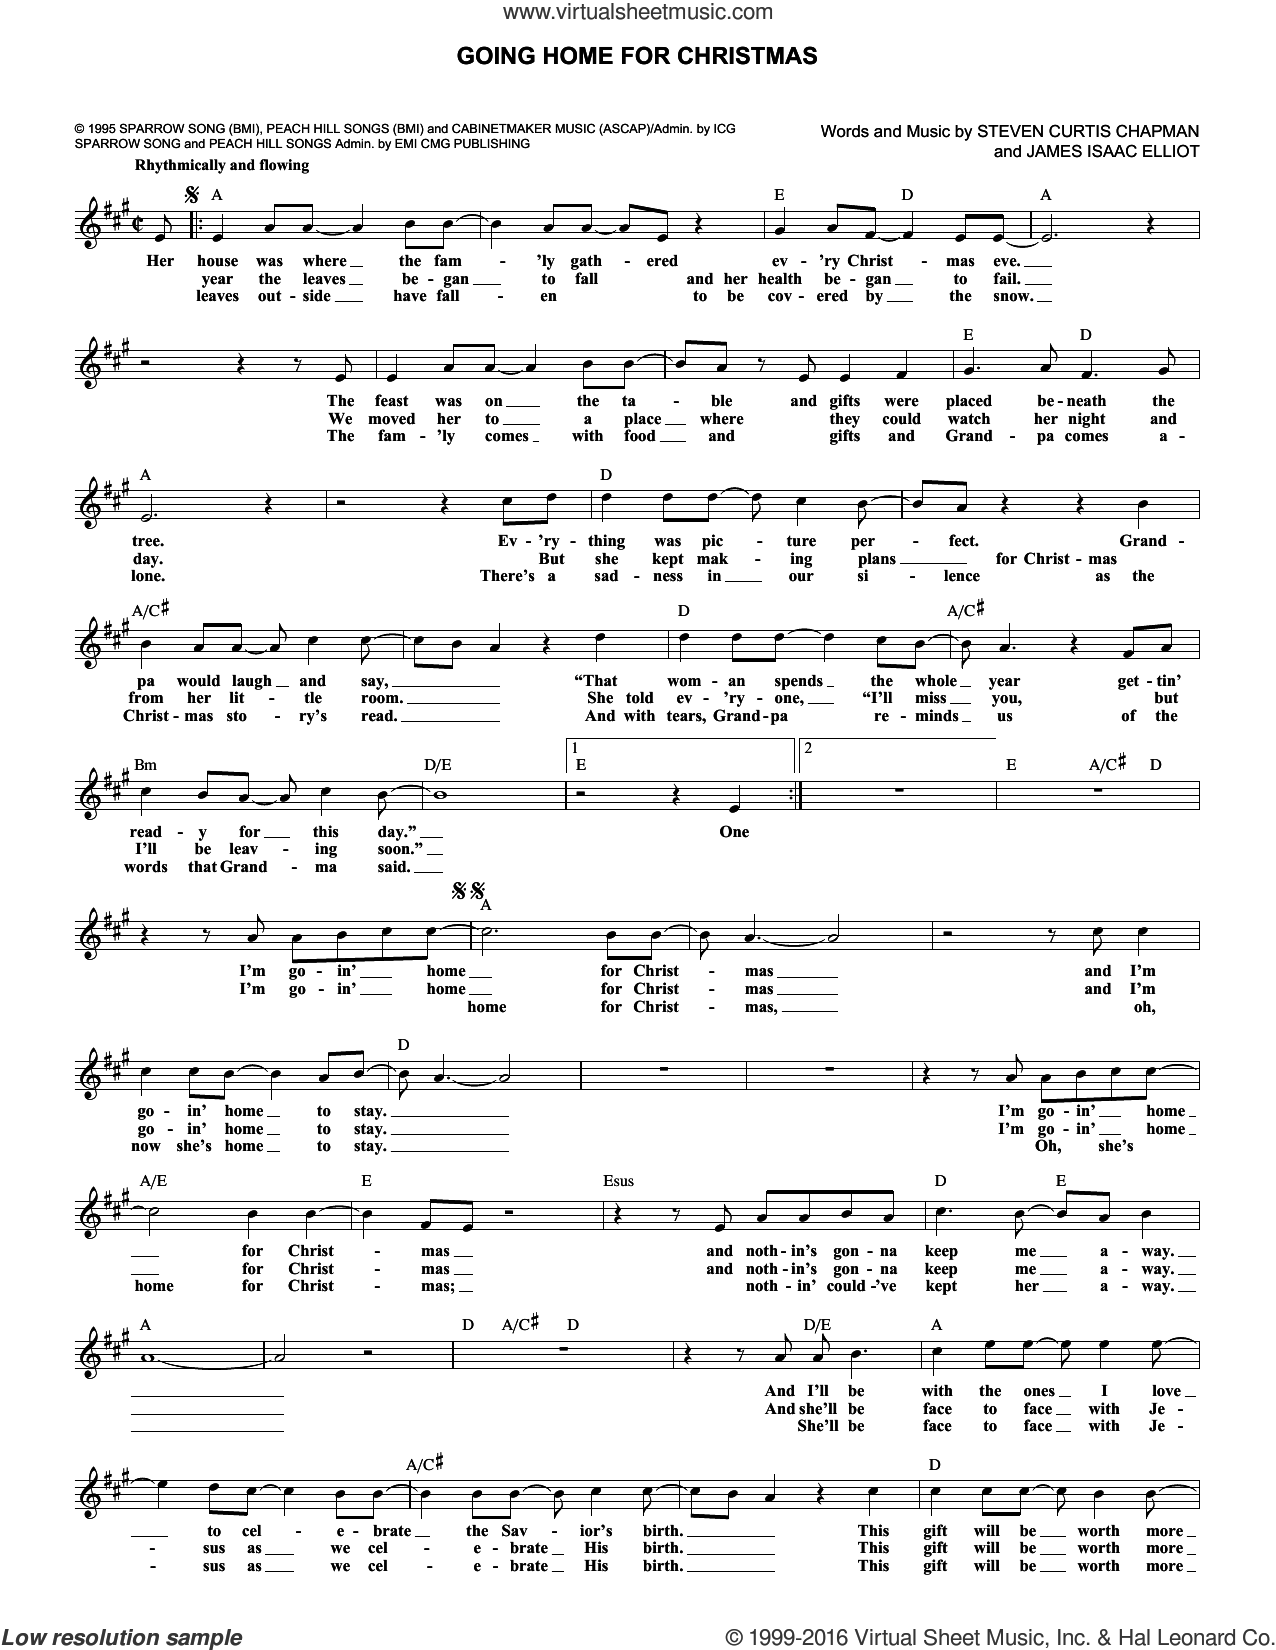 Going Home For Christmas sheet music for voice and other instruments (fake book) by James Isaac Elliott and Steven Curtis Chapman. Score Image Preview.